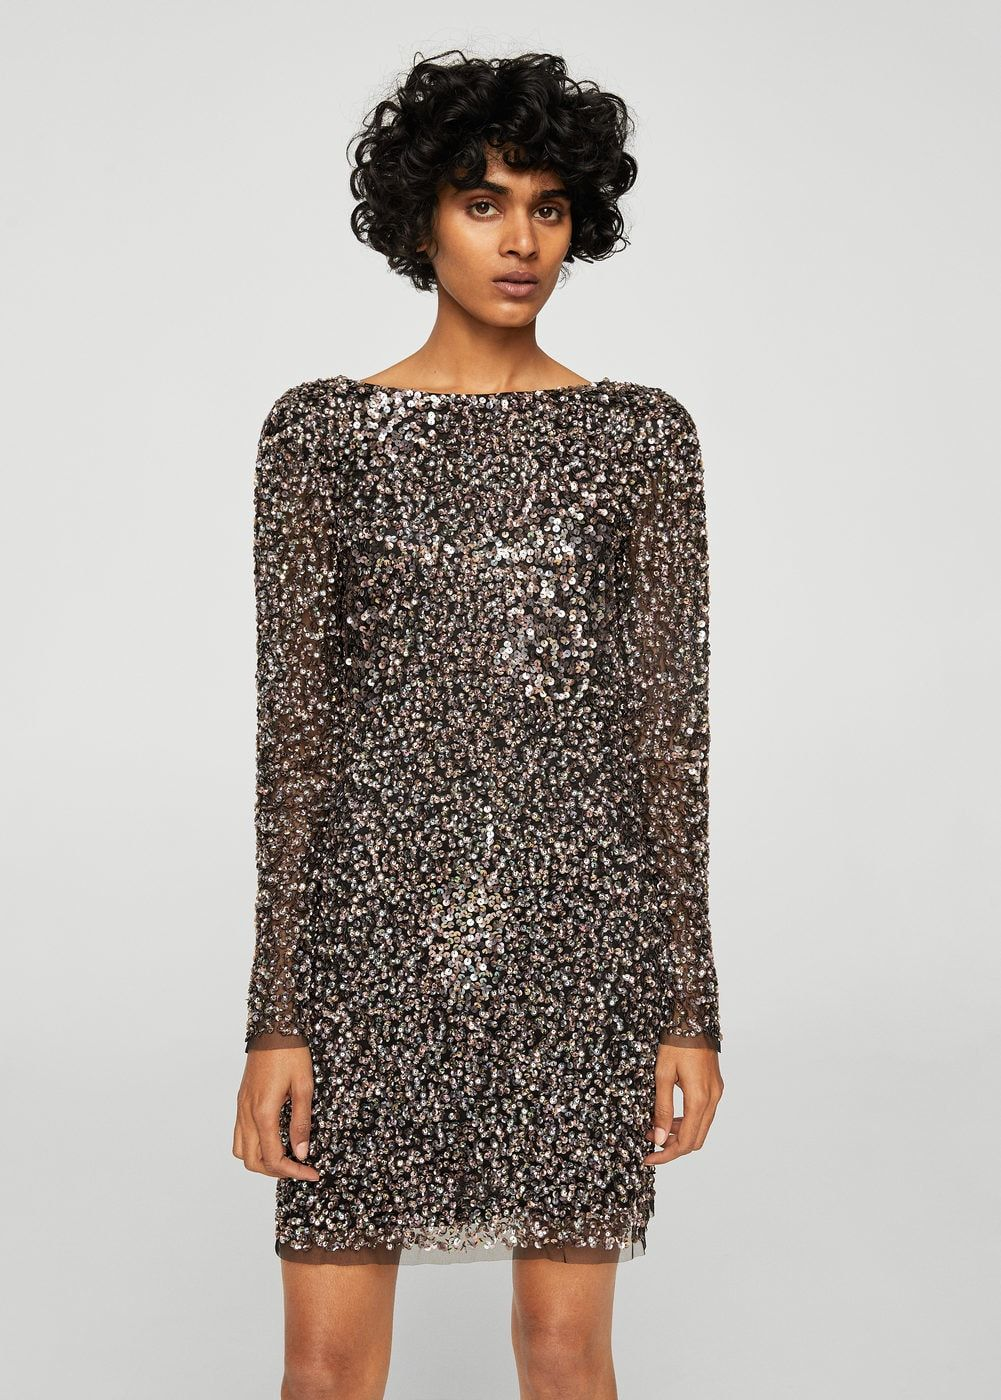 Sequin embroidered dress - Woman   mango   Dresses, Sequins, Fashion 2525782ce9